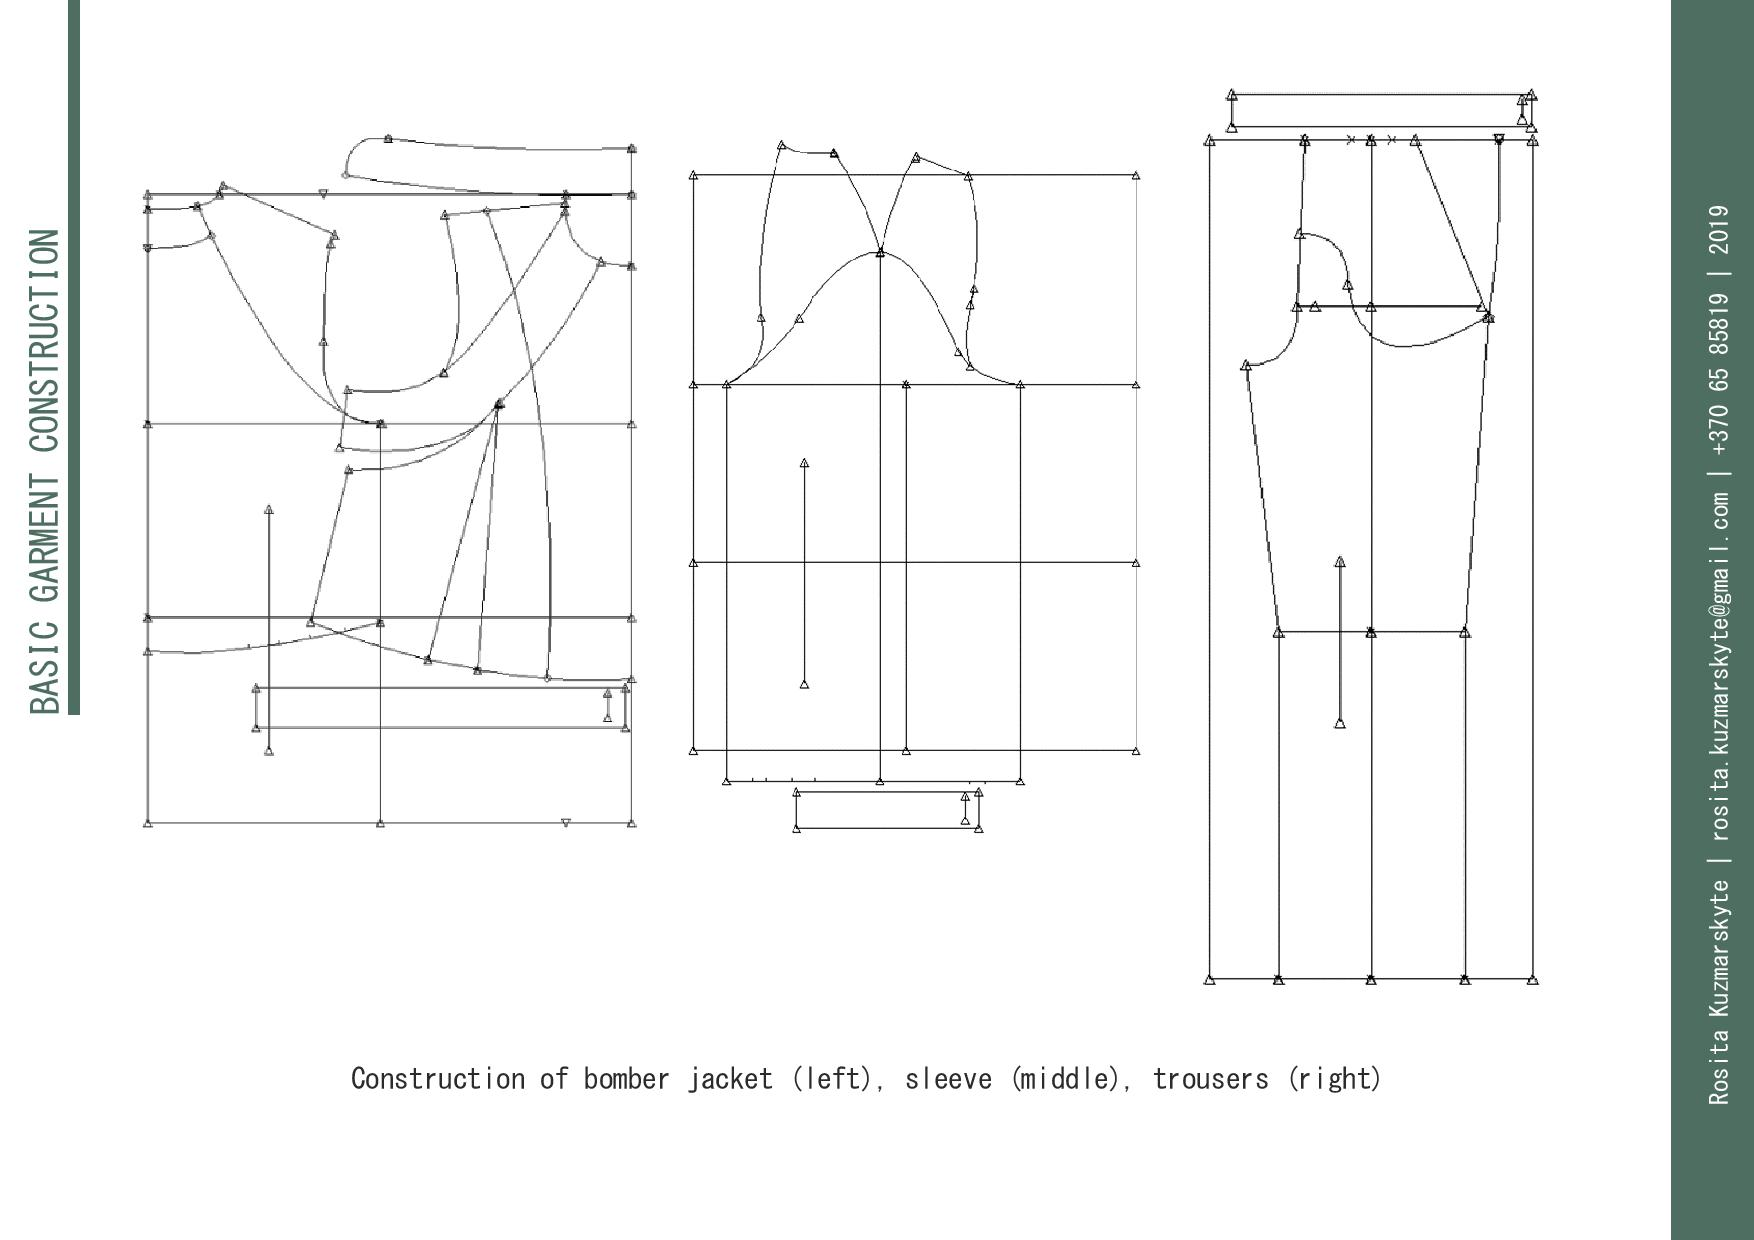 Construction of the Garments